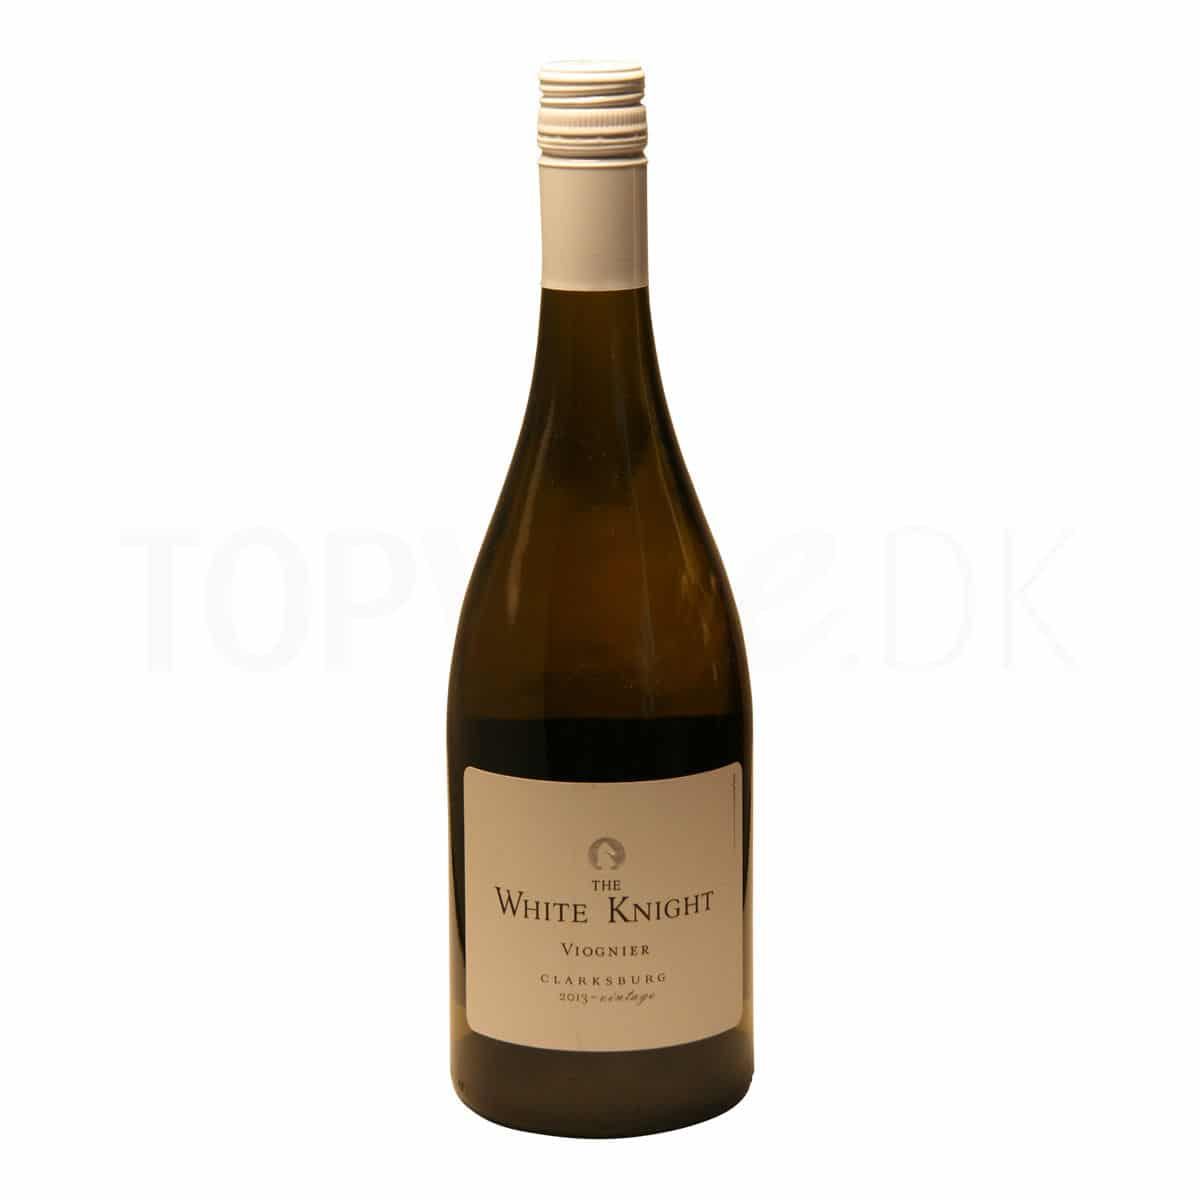 Topvine The white knight viognier 2013